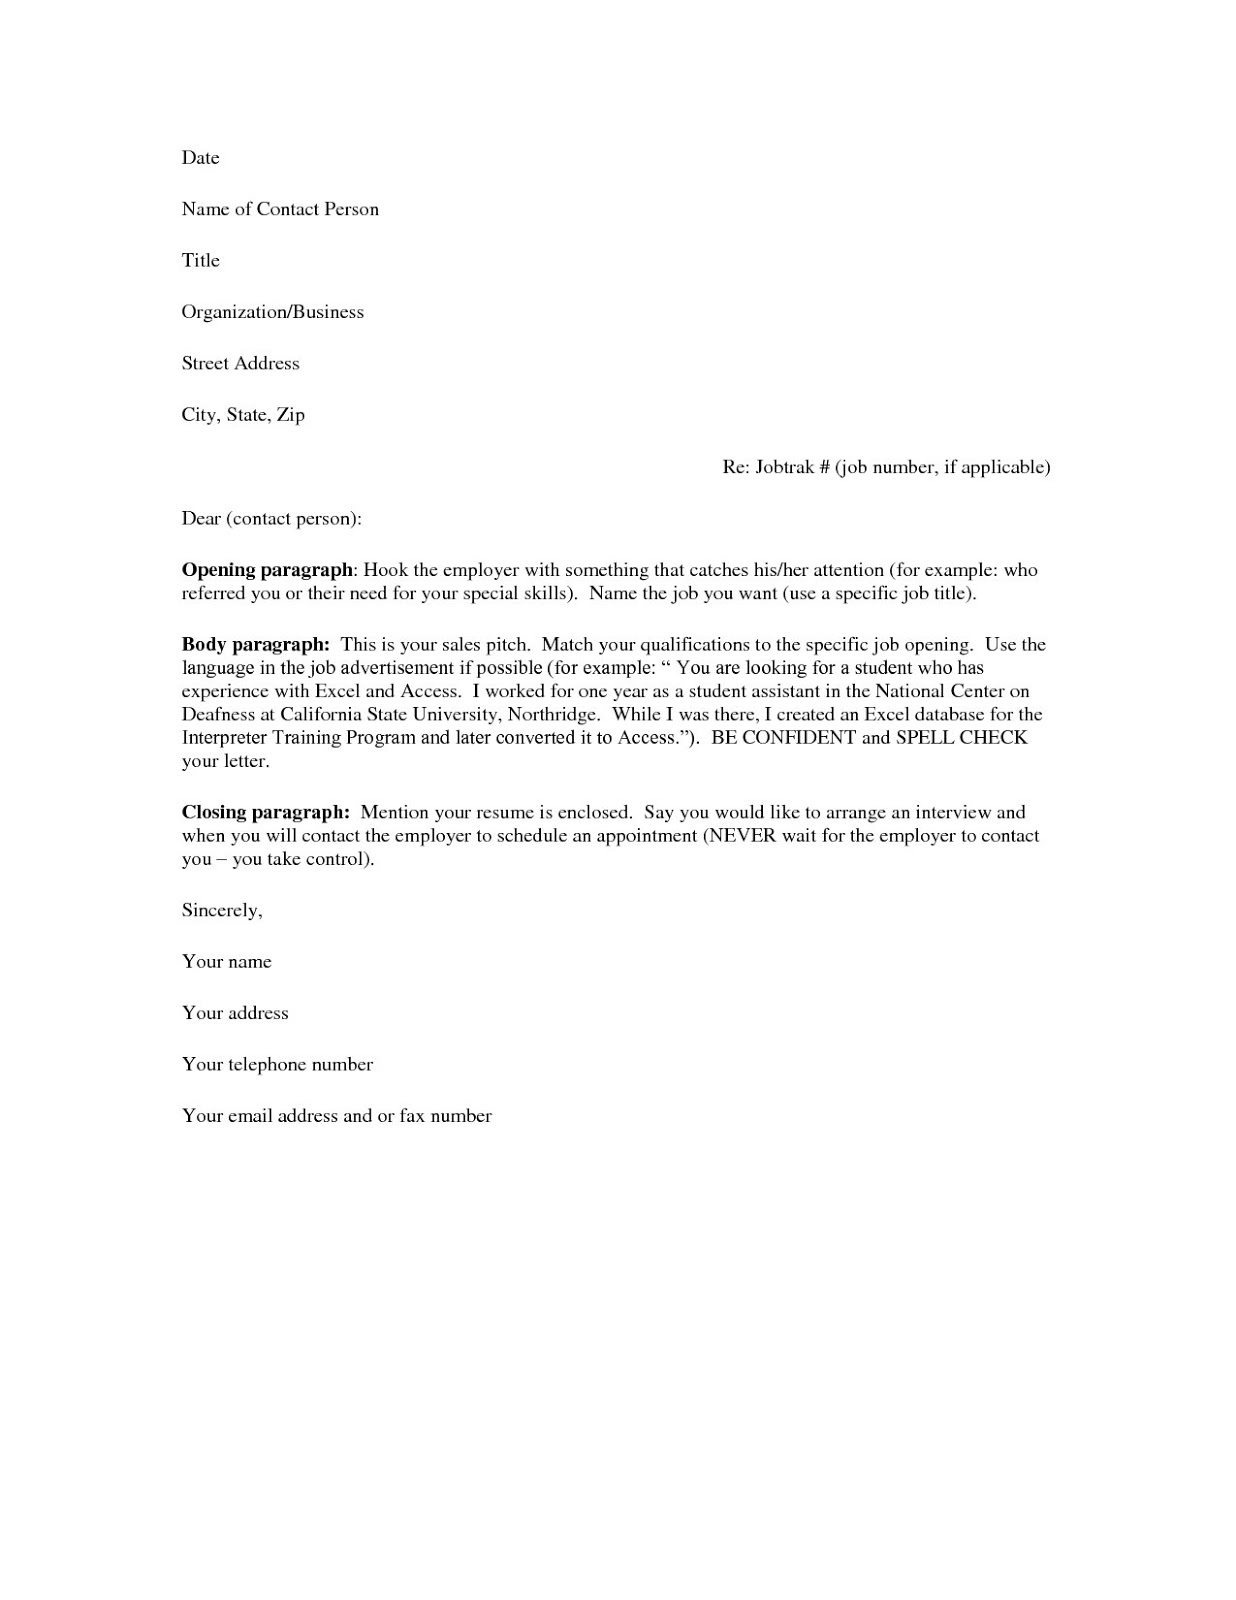 good resume cover letter Damn good resume guide: free resume tips, resume samples, and resume help for job seekers and professional resume writers.